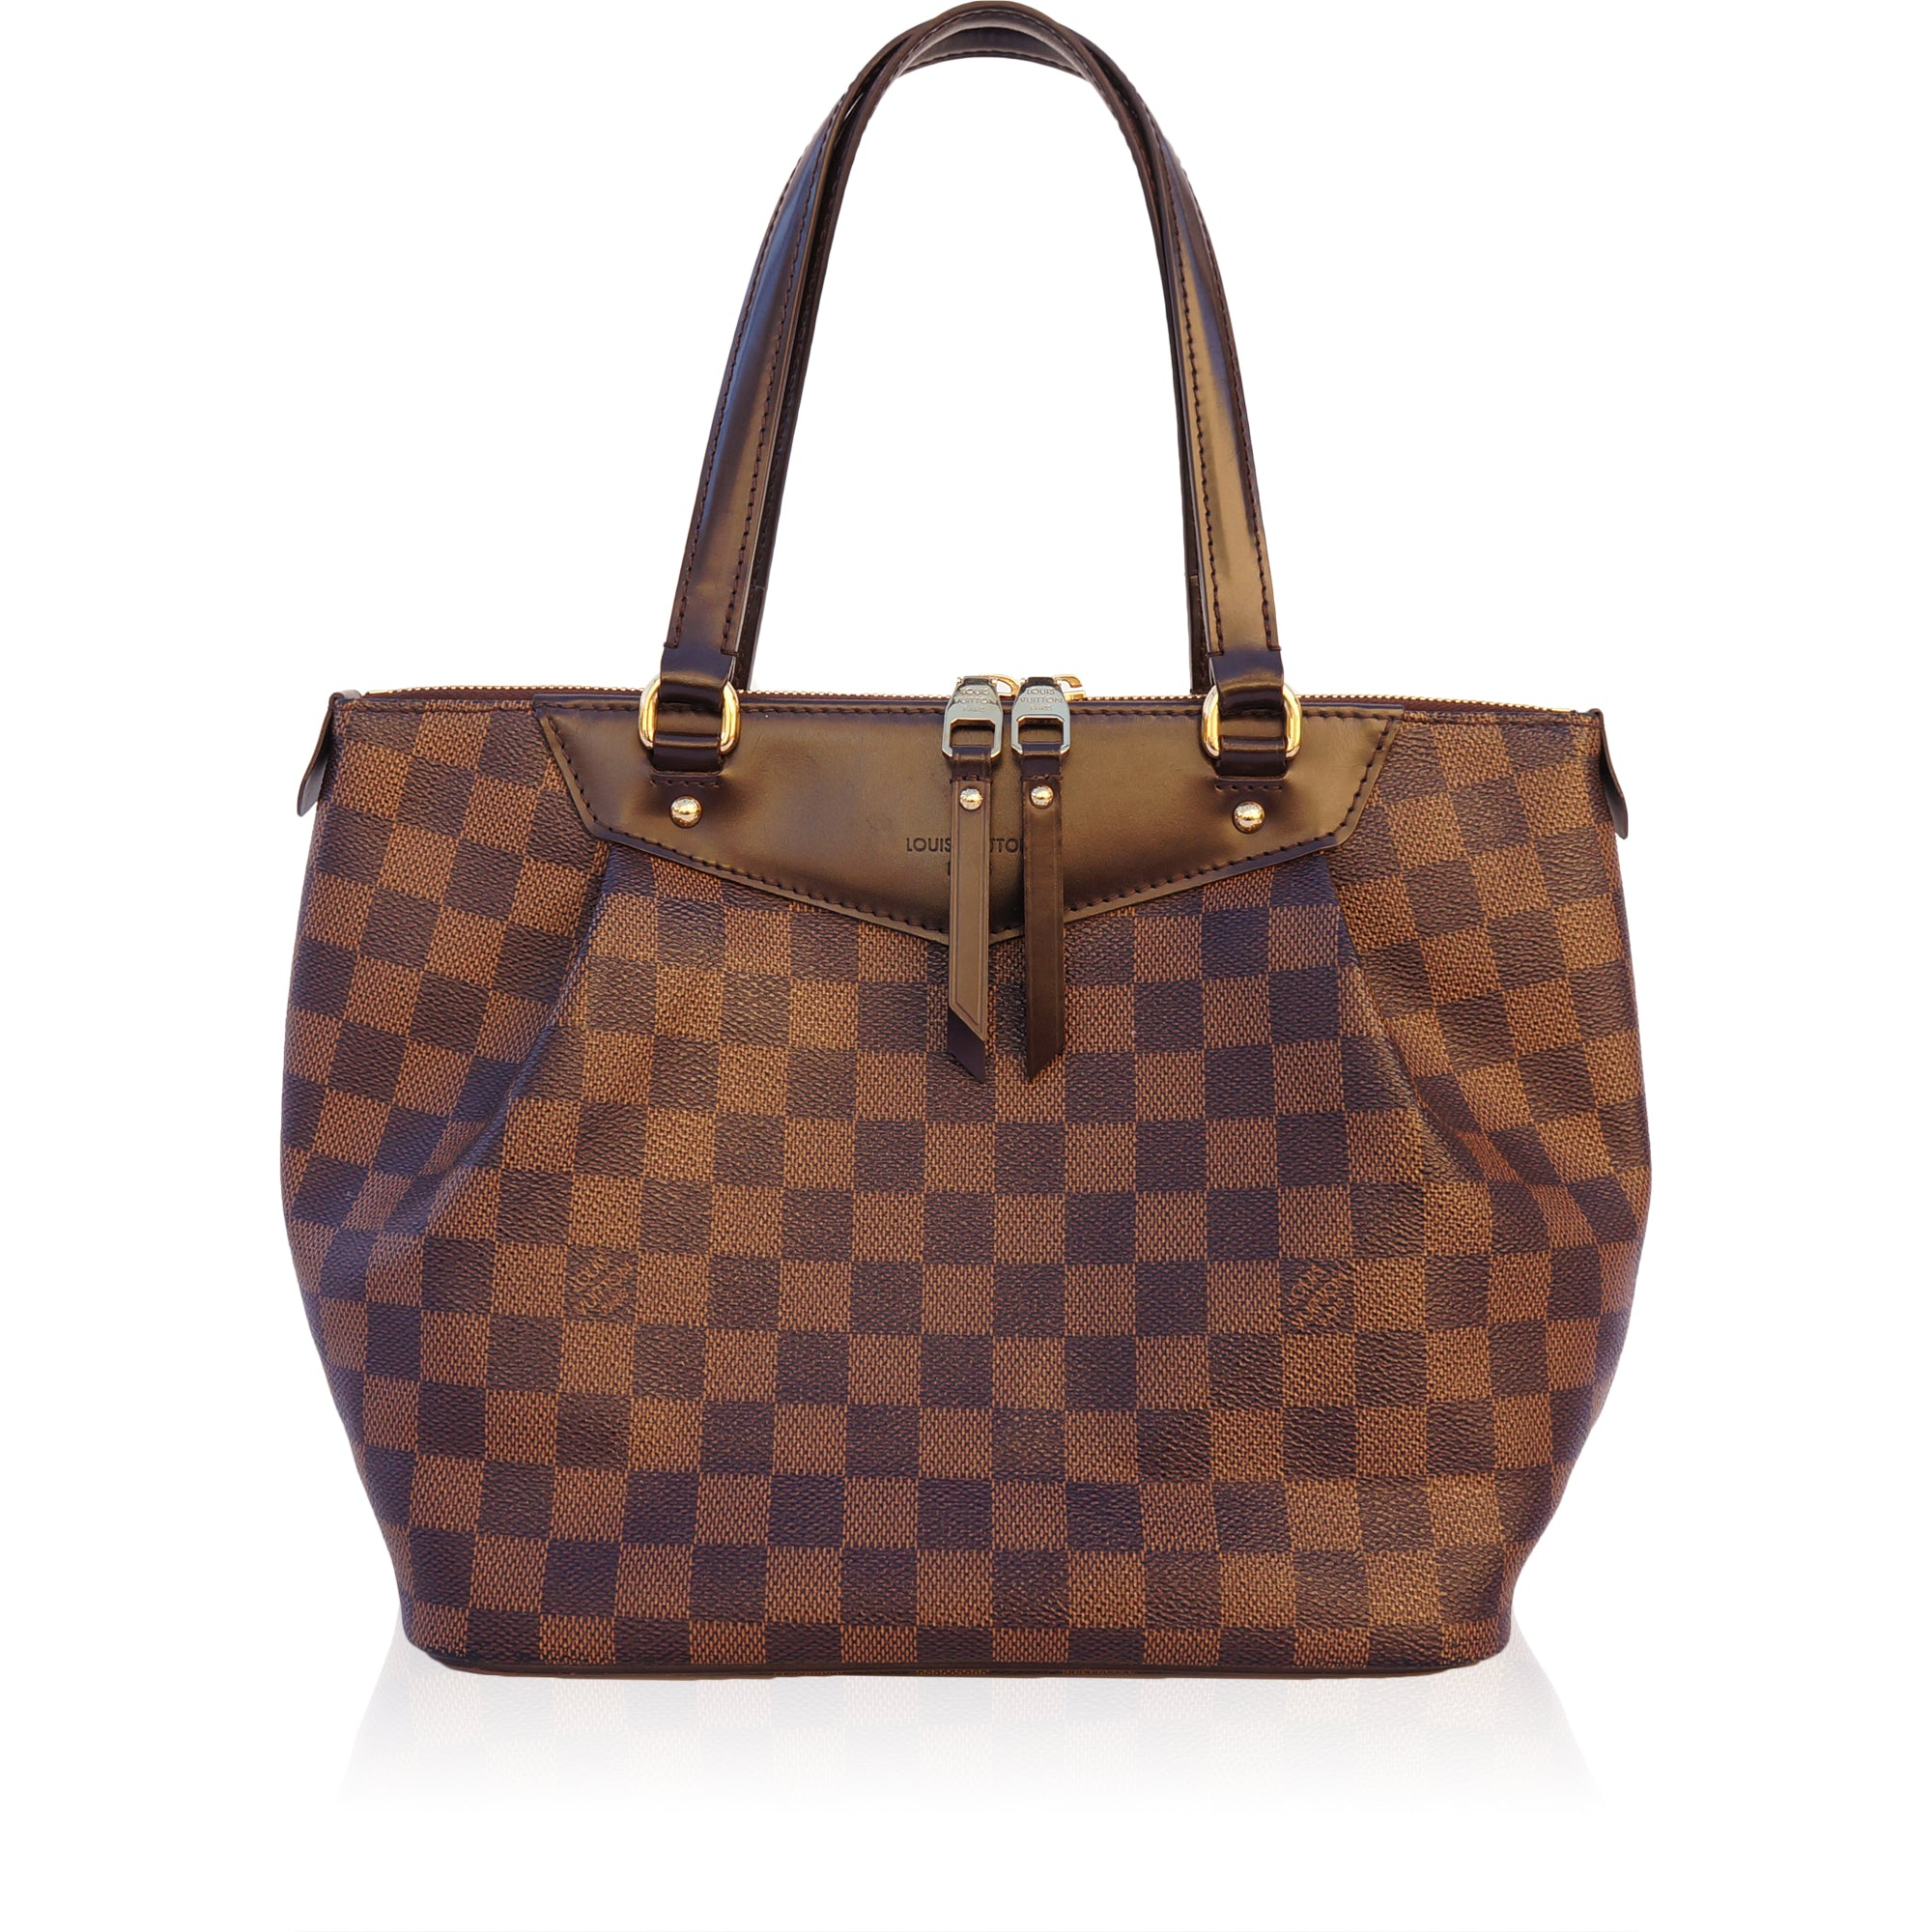 aa17bbeae47d LOUIS VUITTON DAMIER EBENE WESTMINSTER PM BAGShop online the best value on  authentic designer used preowned ...